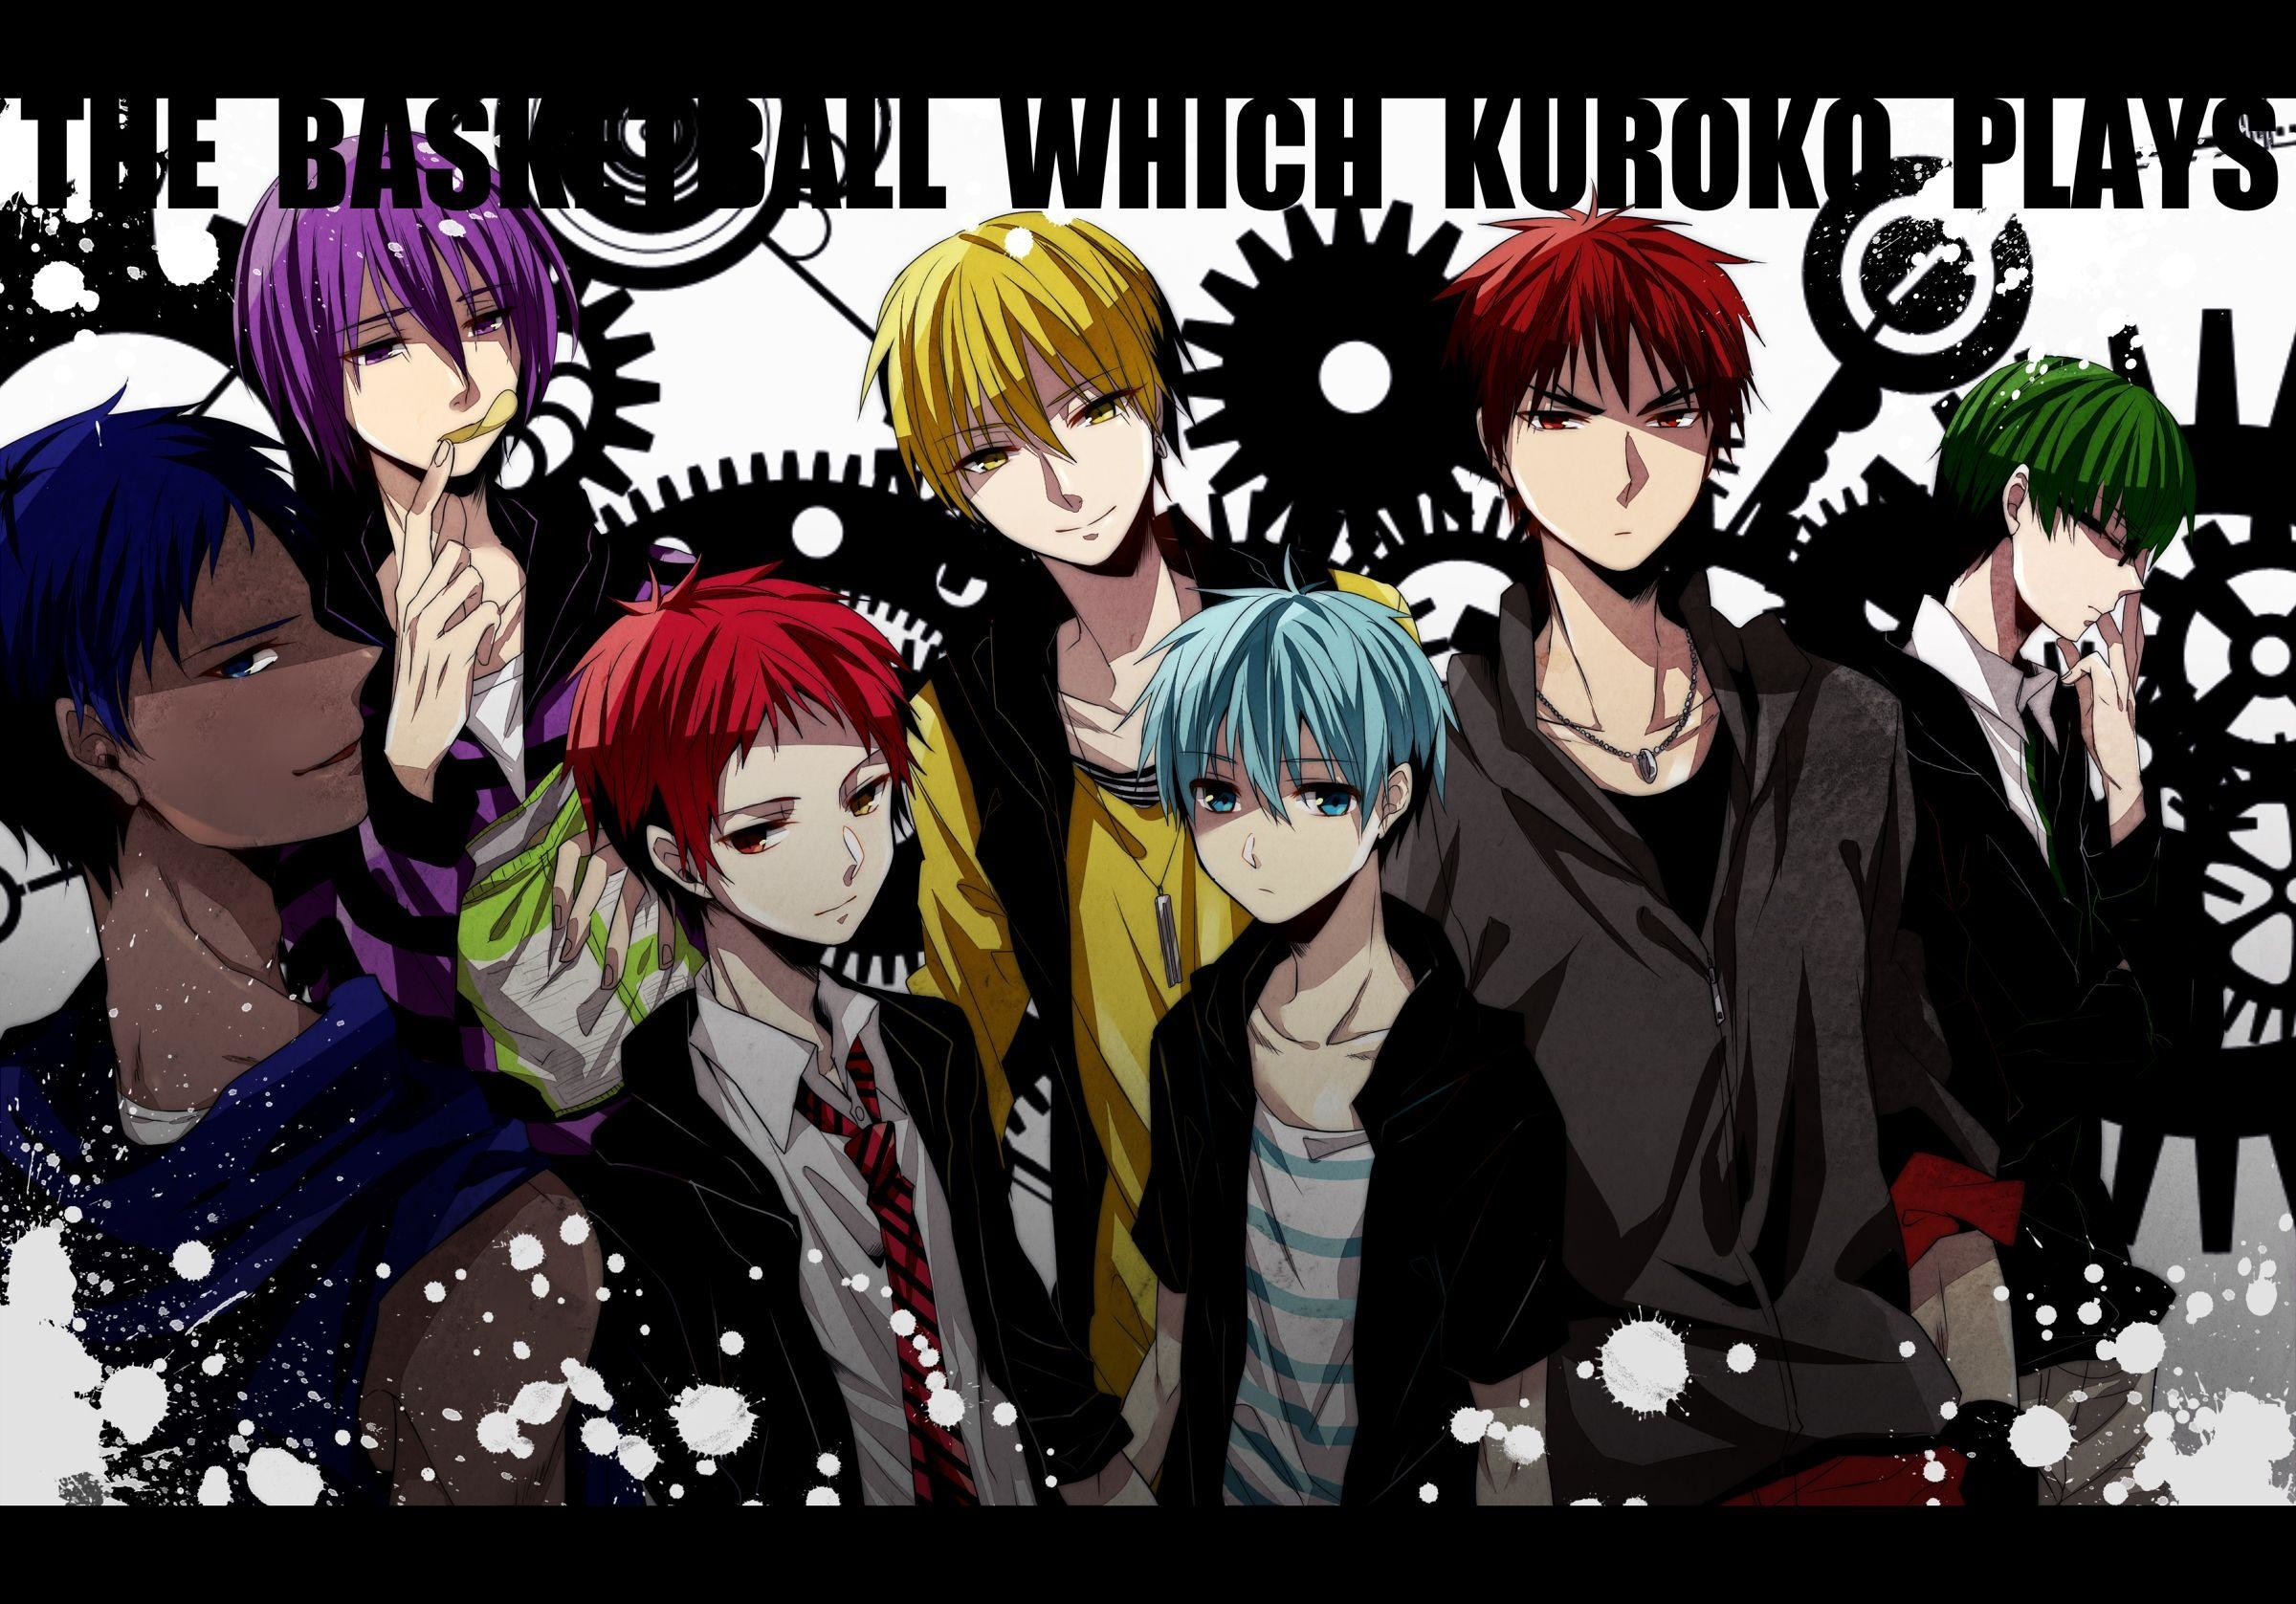 2400x1677 72 Kuroko's Basketball HD Wallpapers | Backgrounds - Wallpaper Abyss